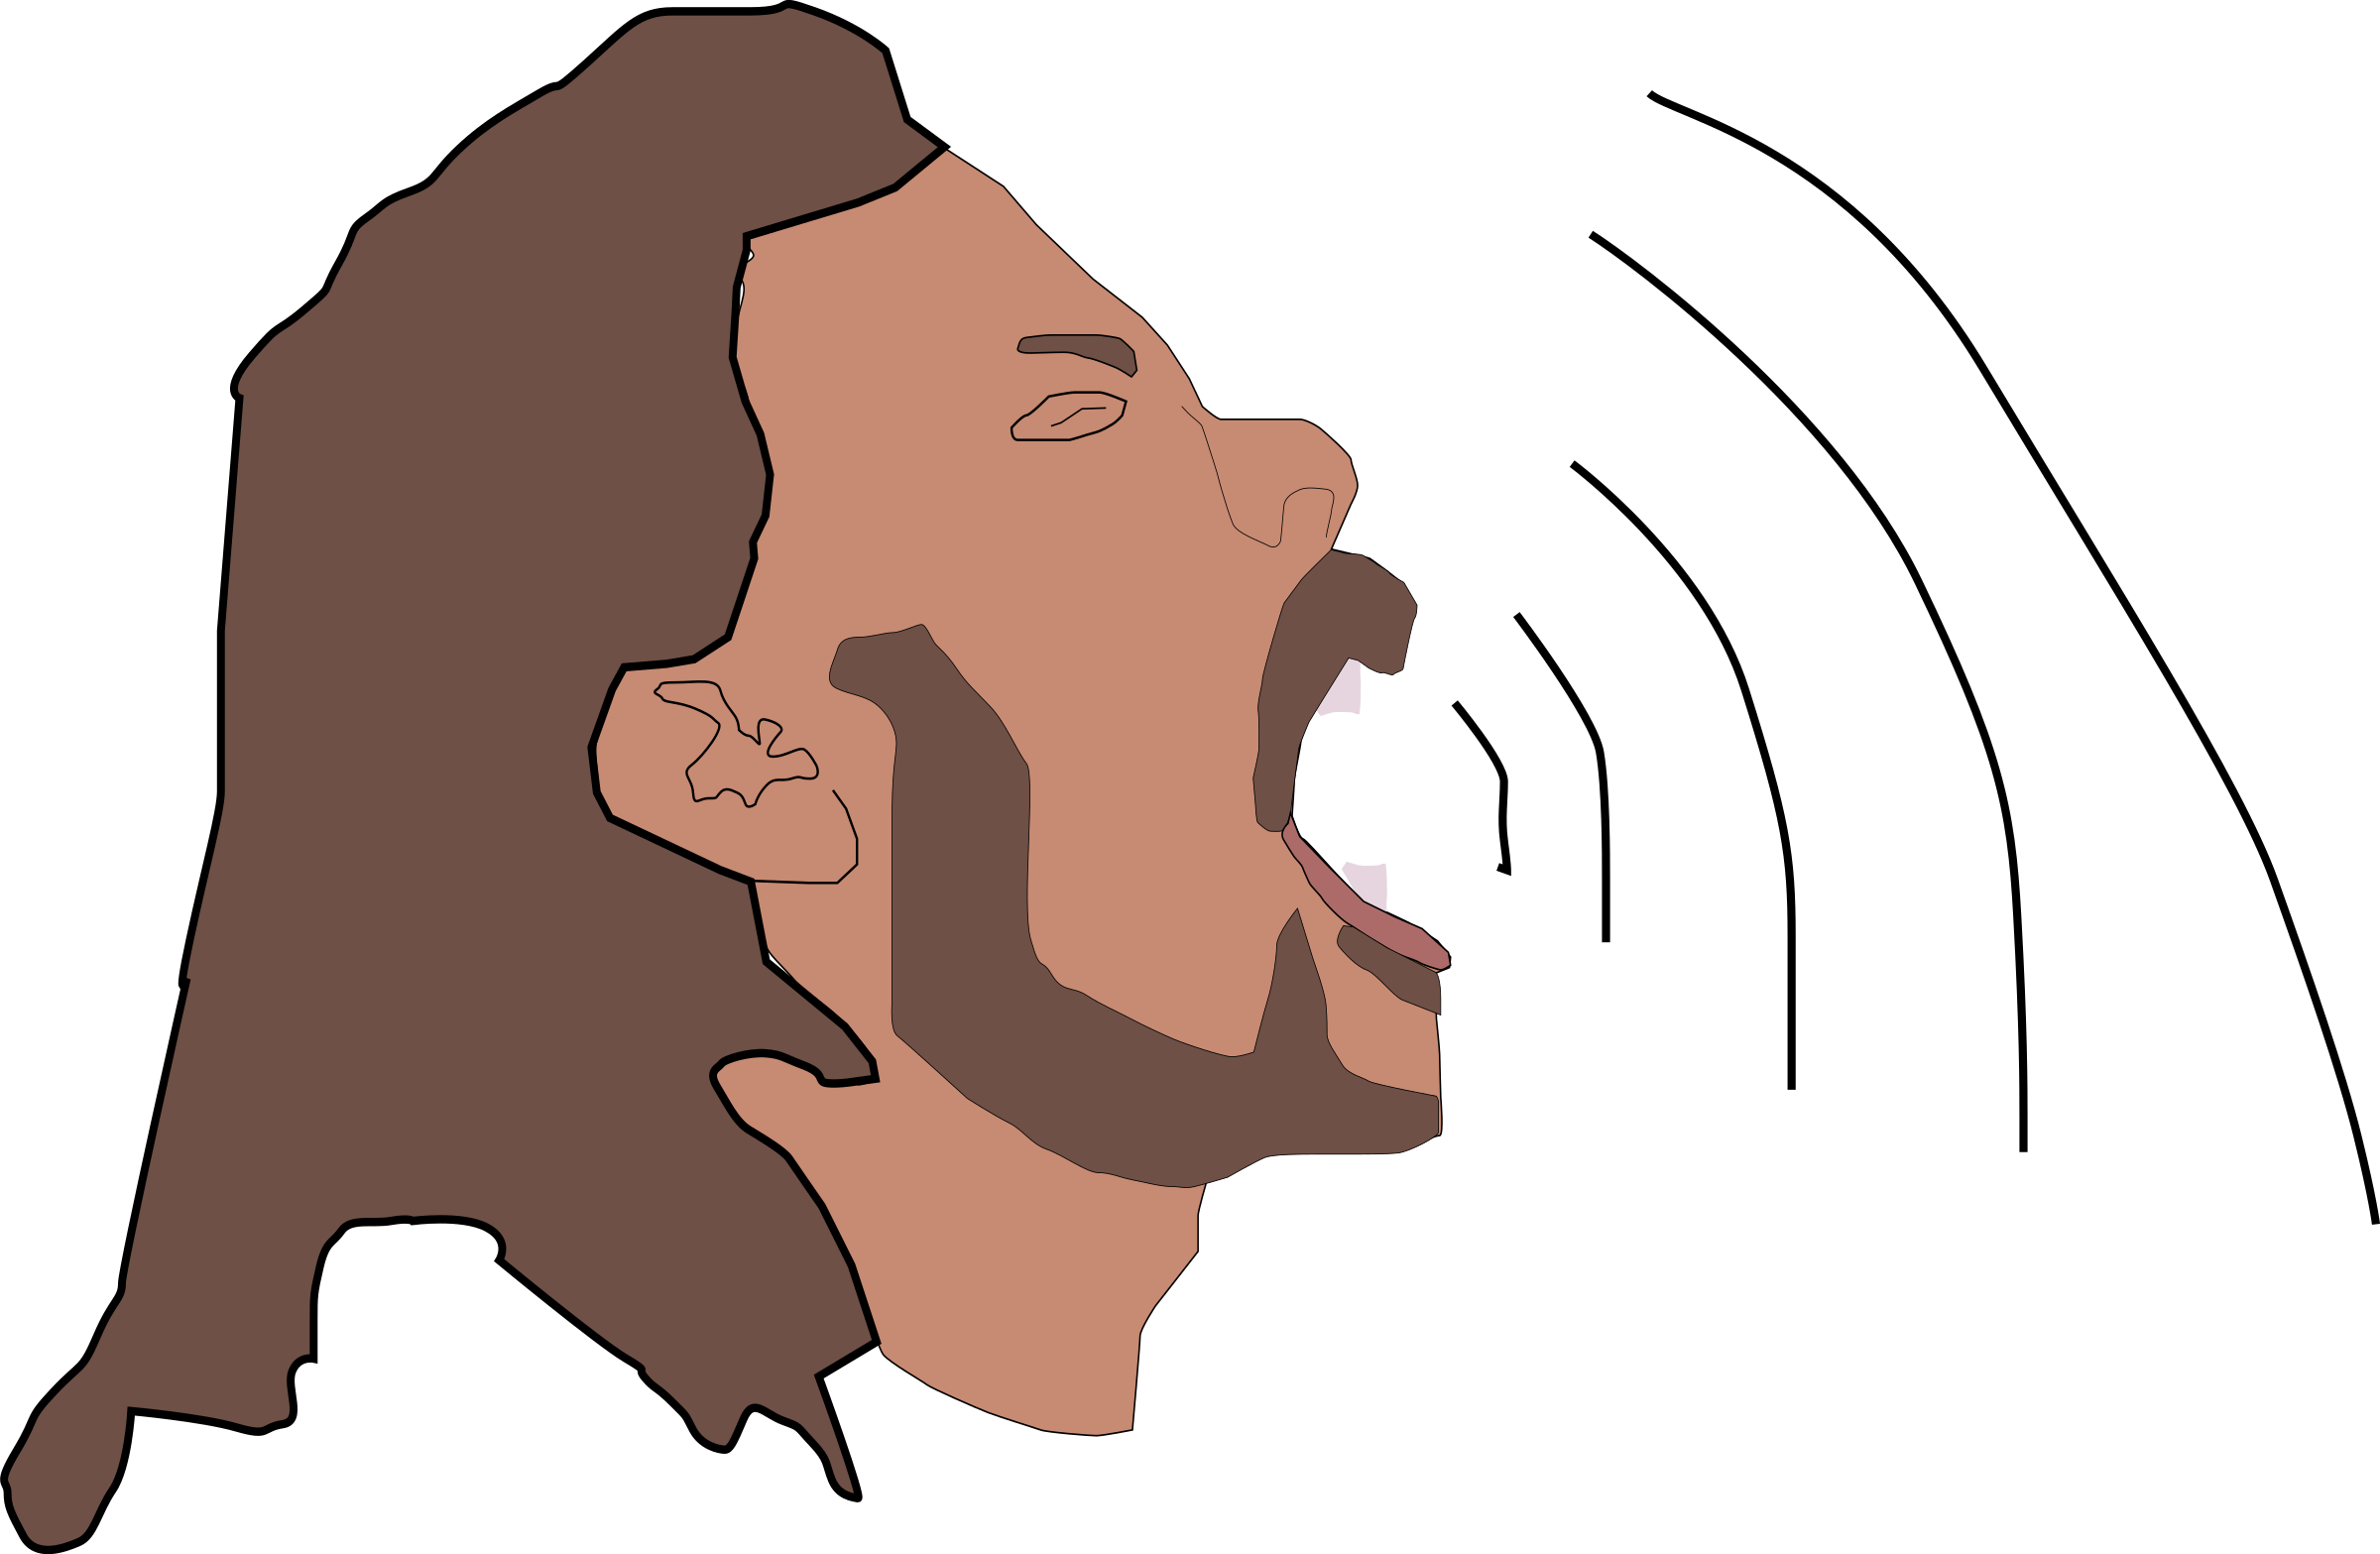 Yelling clipart screamed. Sing big image png